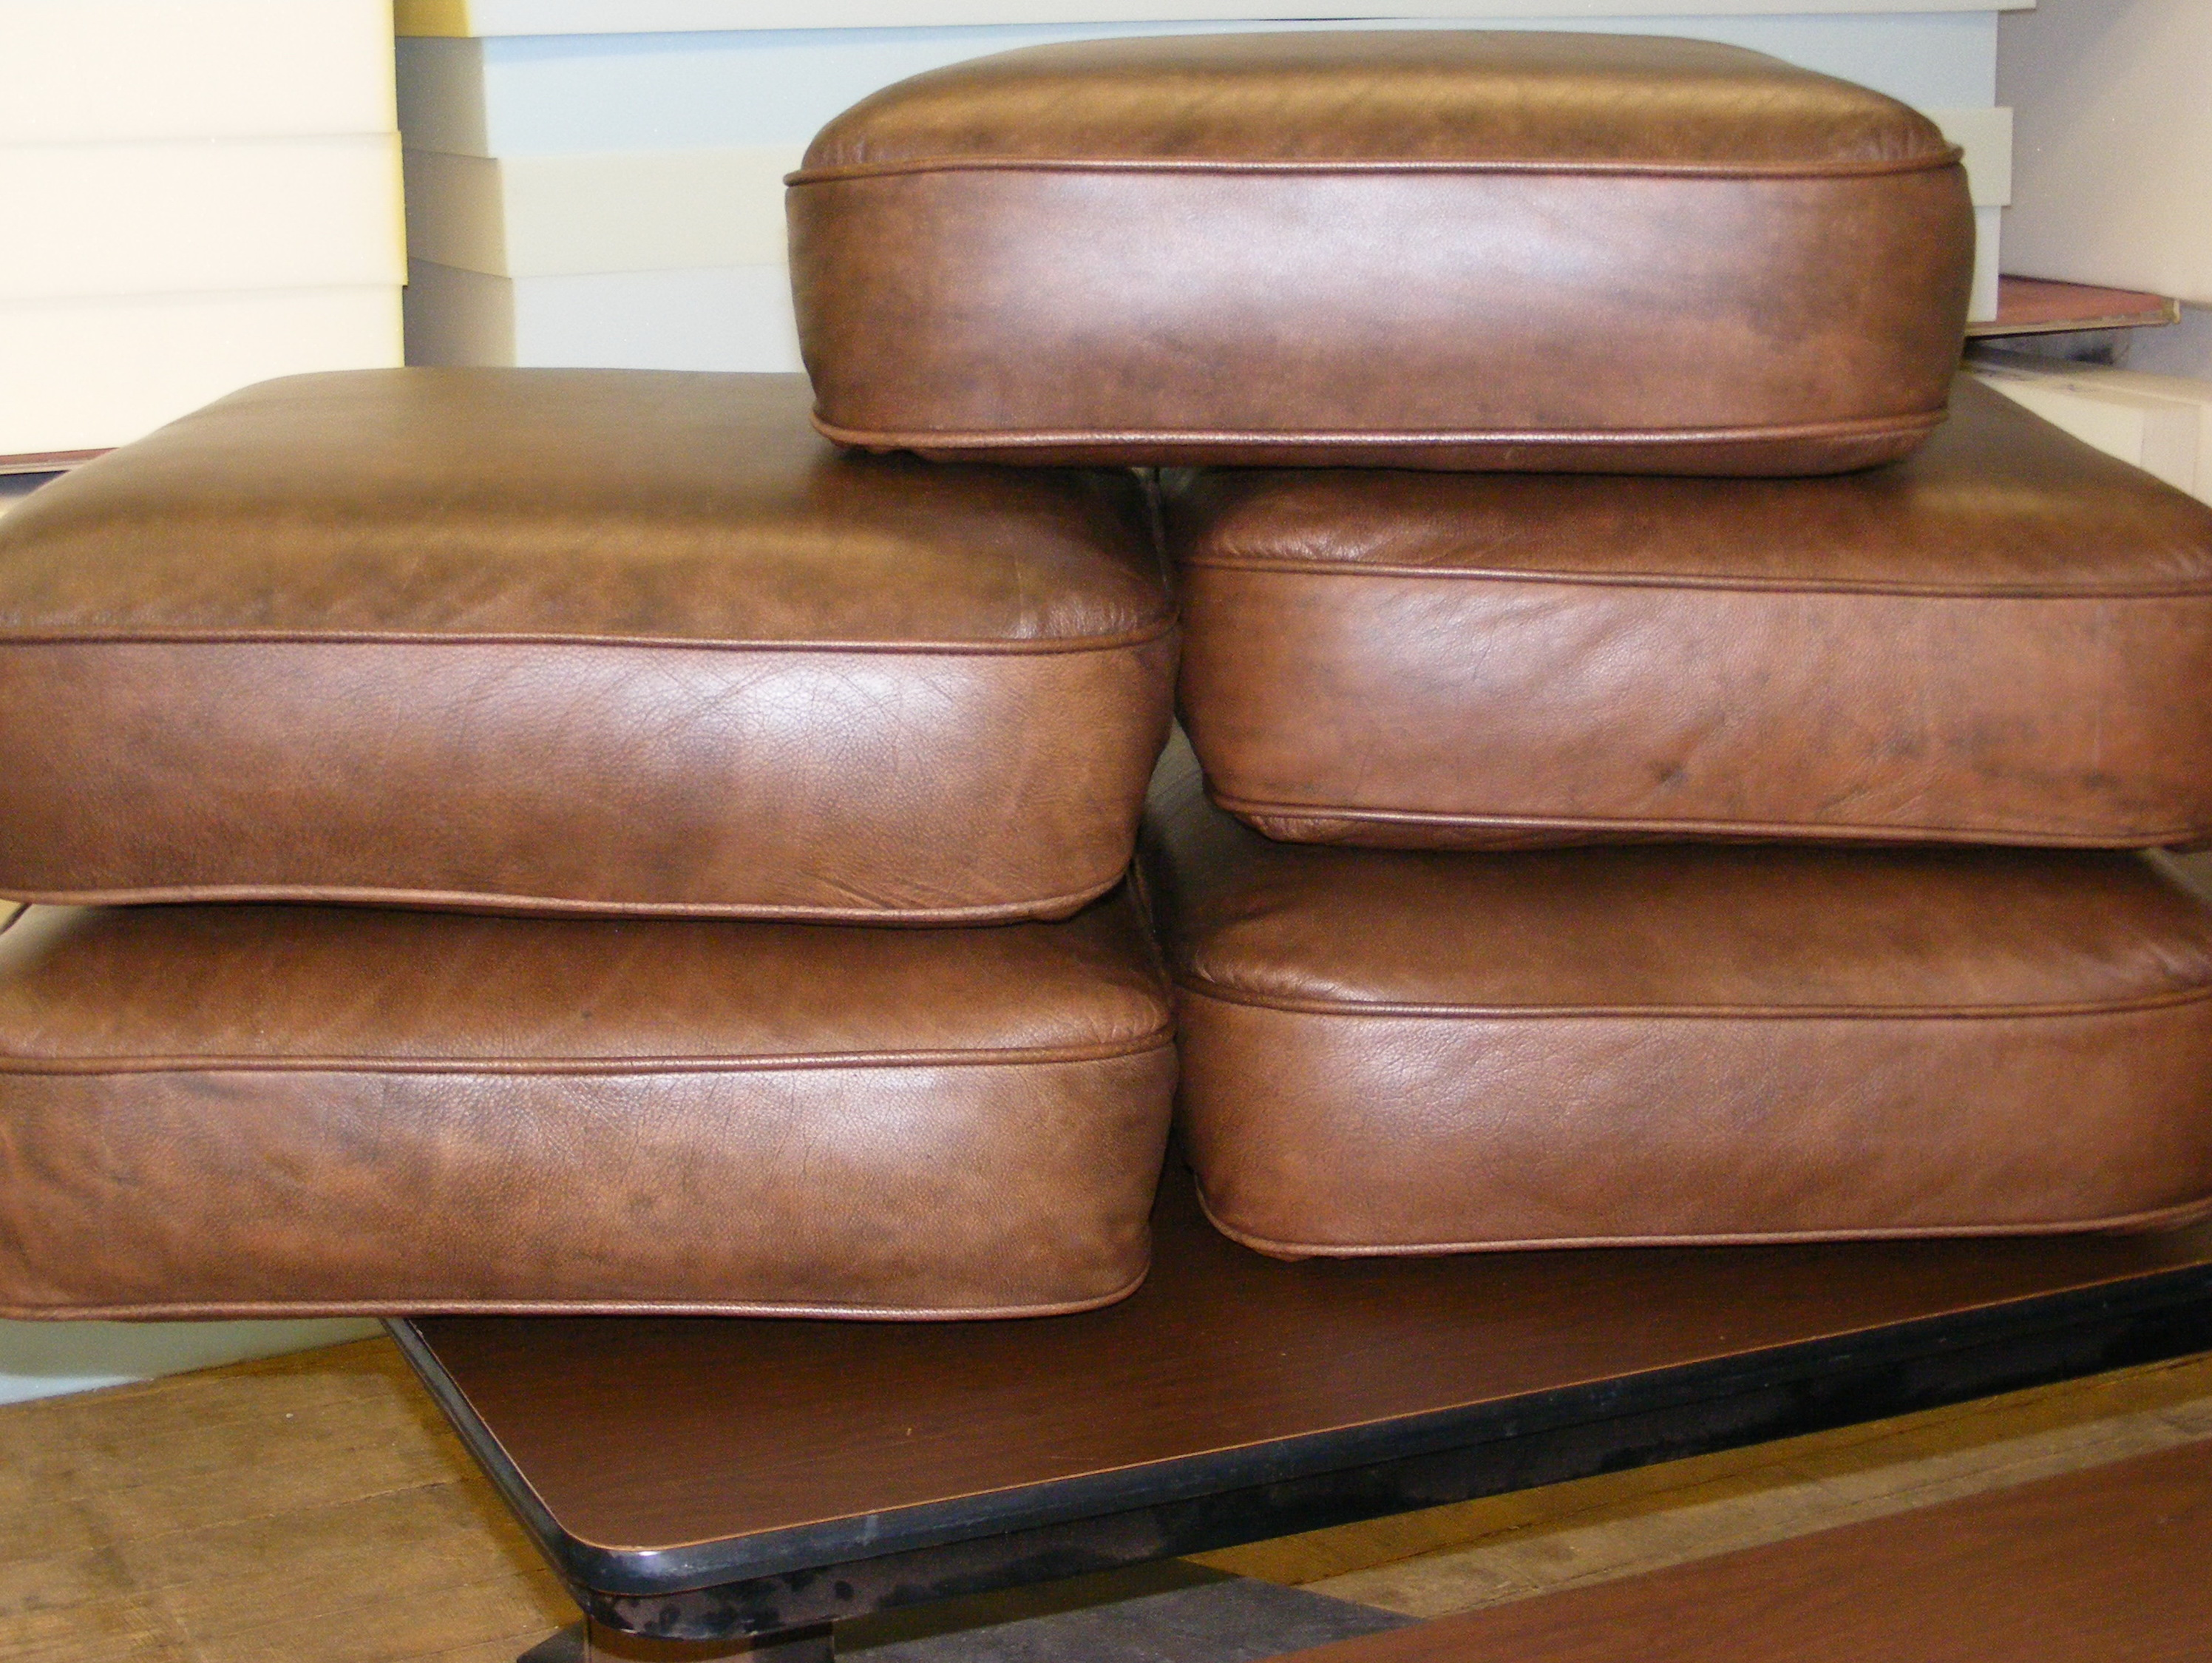 replacement cushions for sofa backs cama easy chile home design ideas